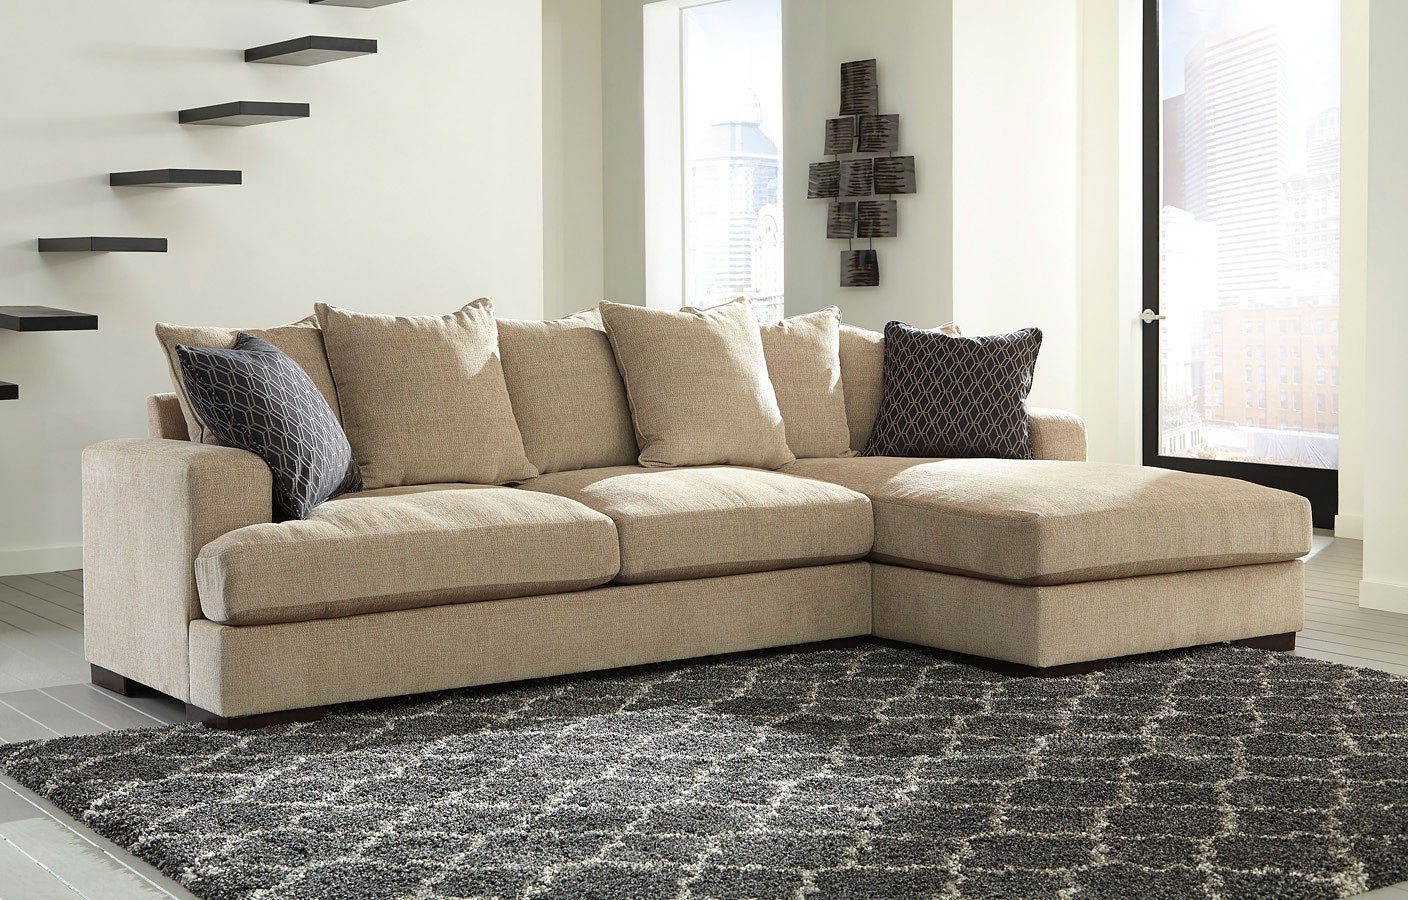 Aquaria Barley Right Chaise Sectional